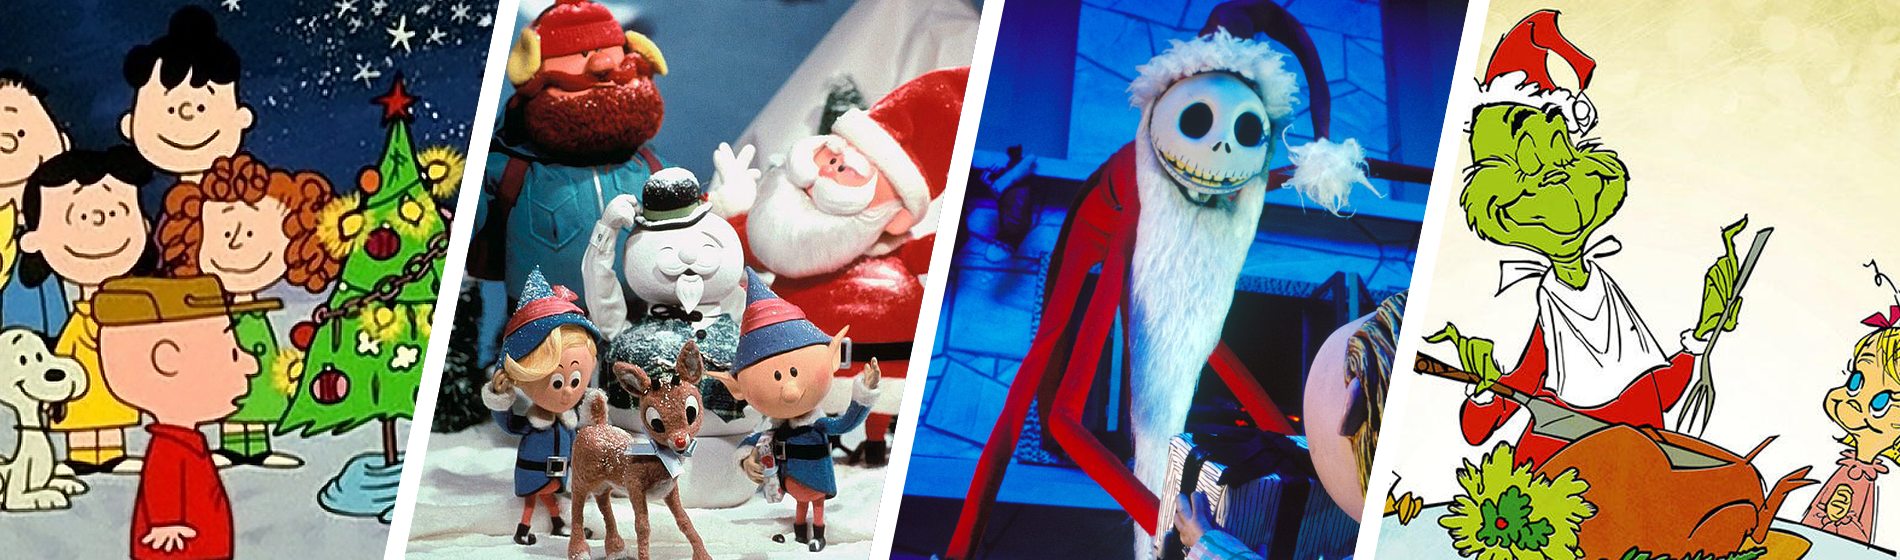 Charlie Brown Christmas, Rudolph, Nightmare Before Christmas, How the Grinch Stole Christmas